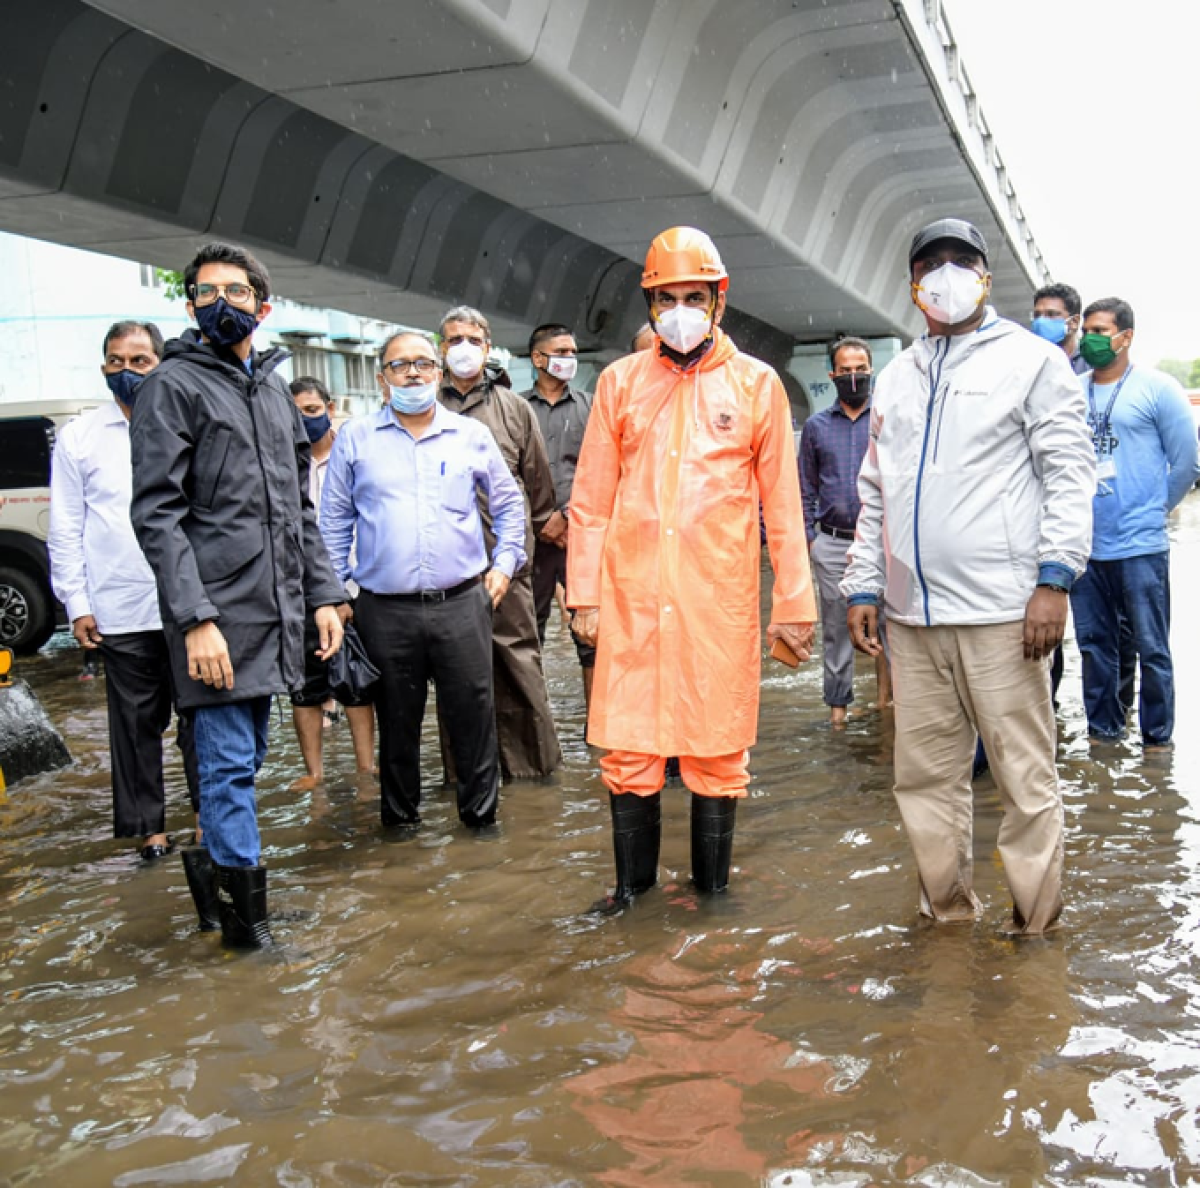 Mumbai Rains Live Updates: NDRF teams recovers body of 1.5-year-old girl from Santacruz chawl collapse